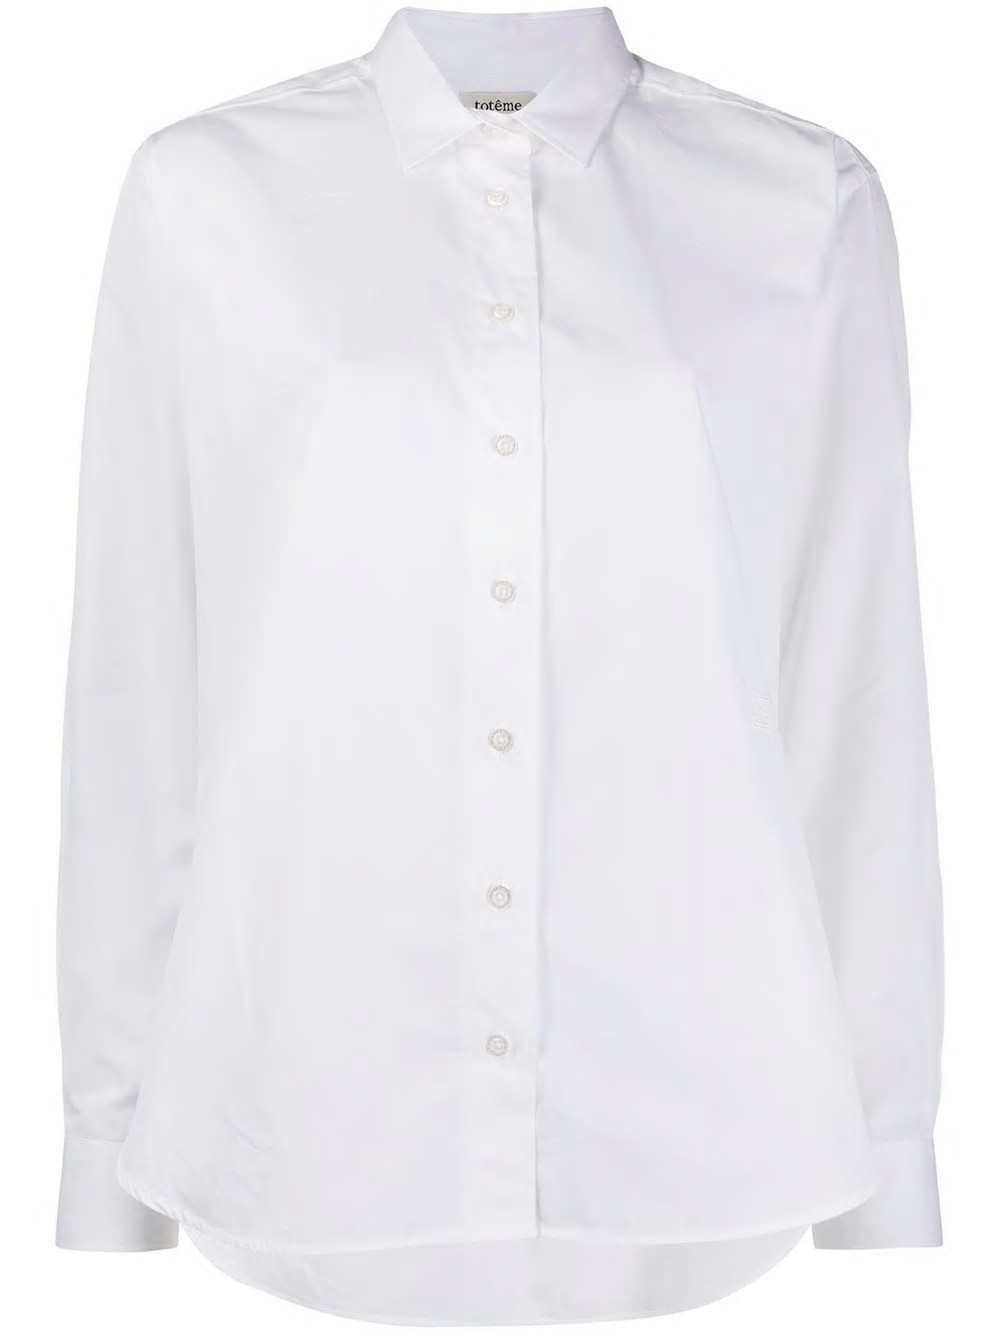 OVERSIZED POPLIN SHIRT WITH EMBROIDERY MONOGRAM